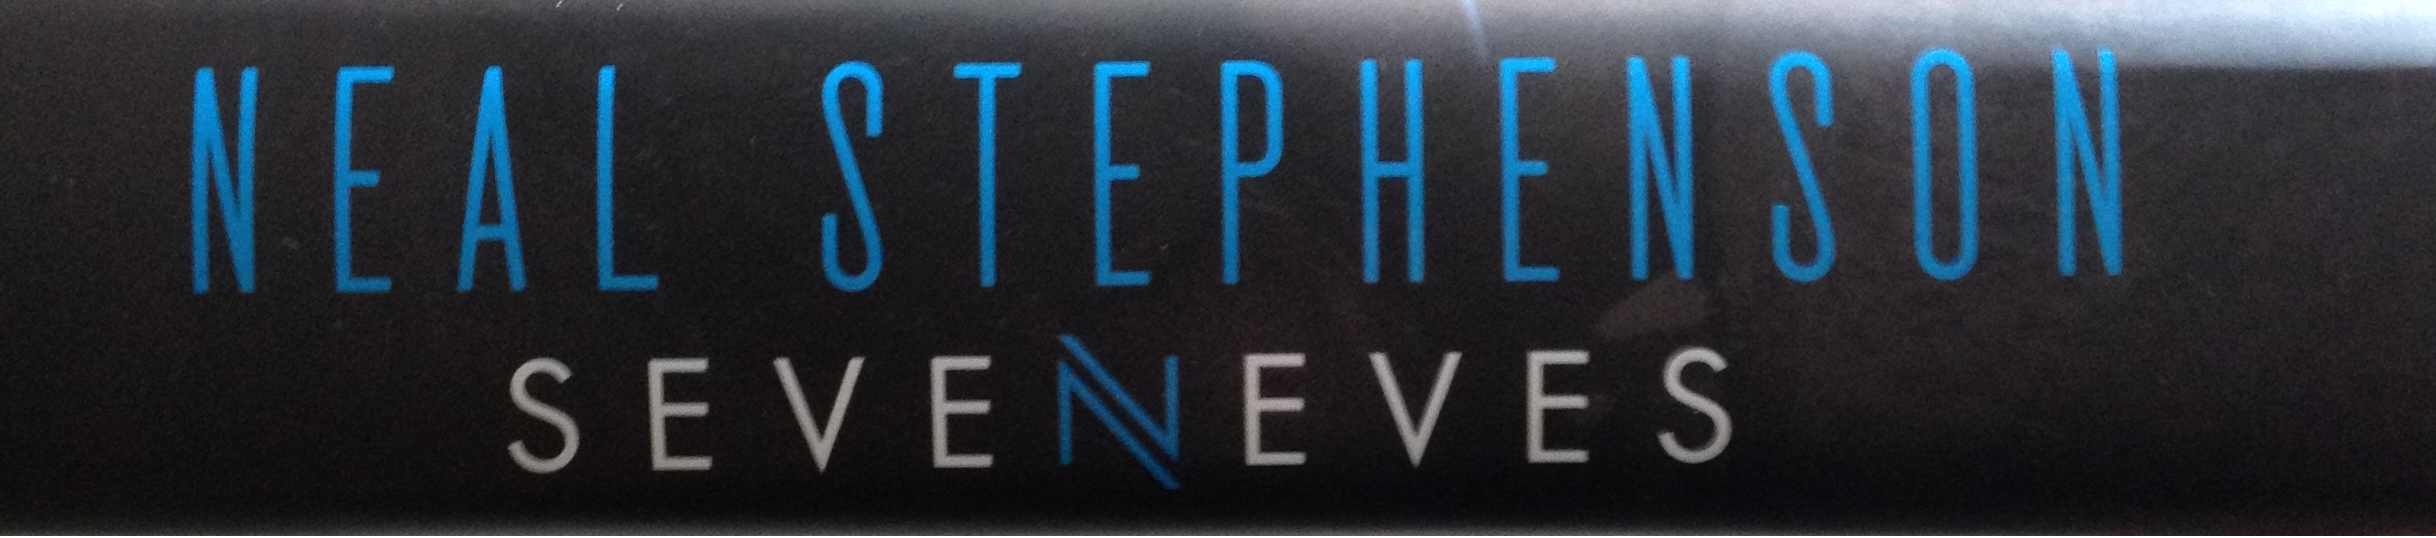 Seveneves 05 book spine